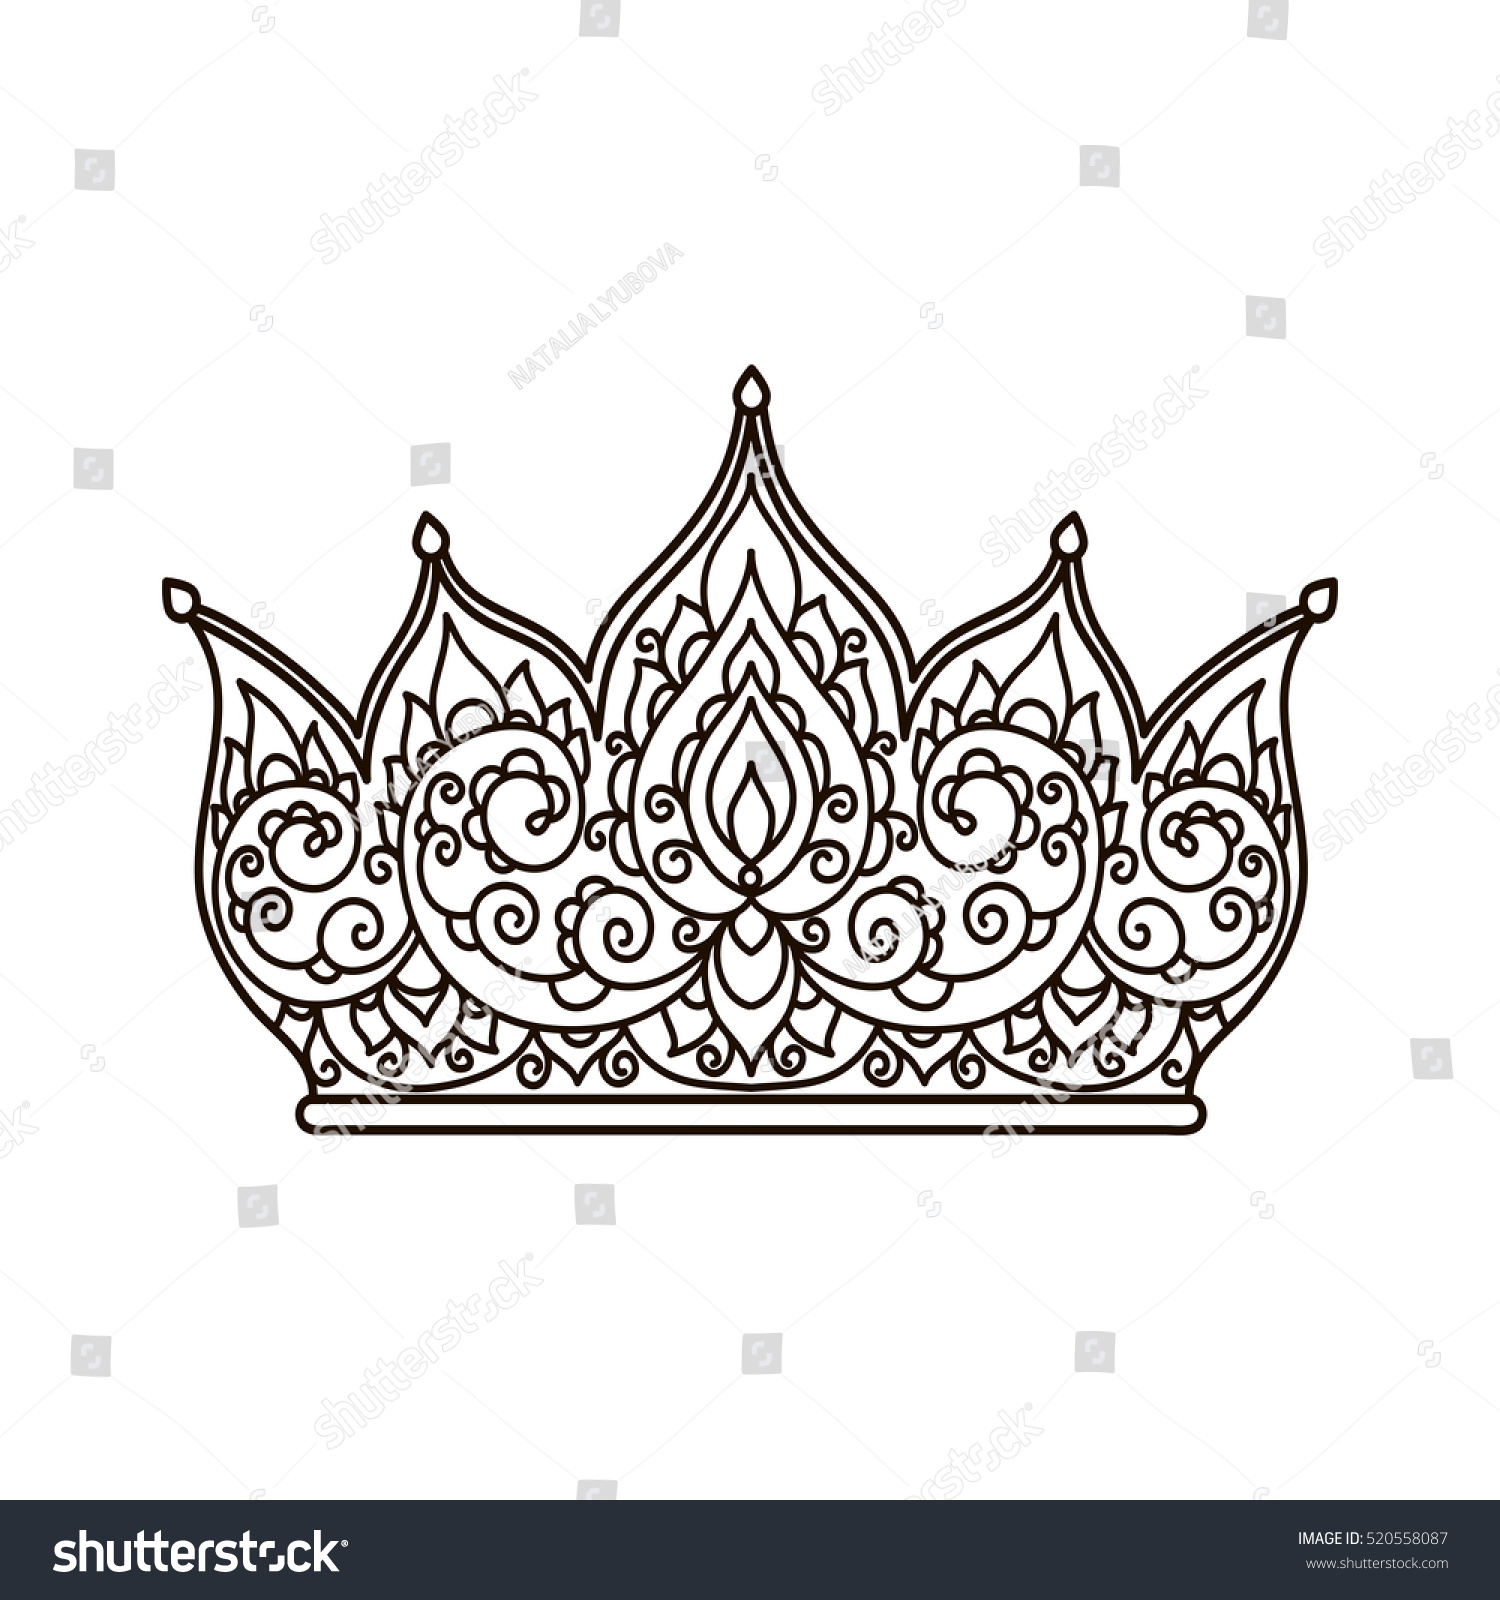 Vector Illustration Outline Crown Coloring Page Stock Vector ...